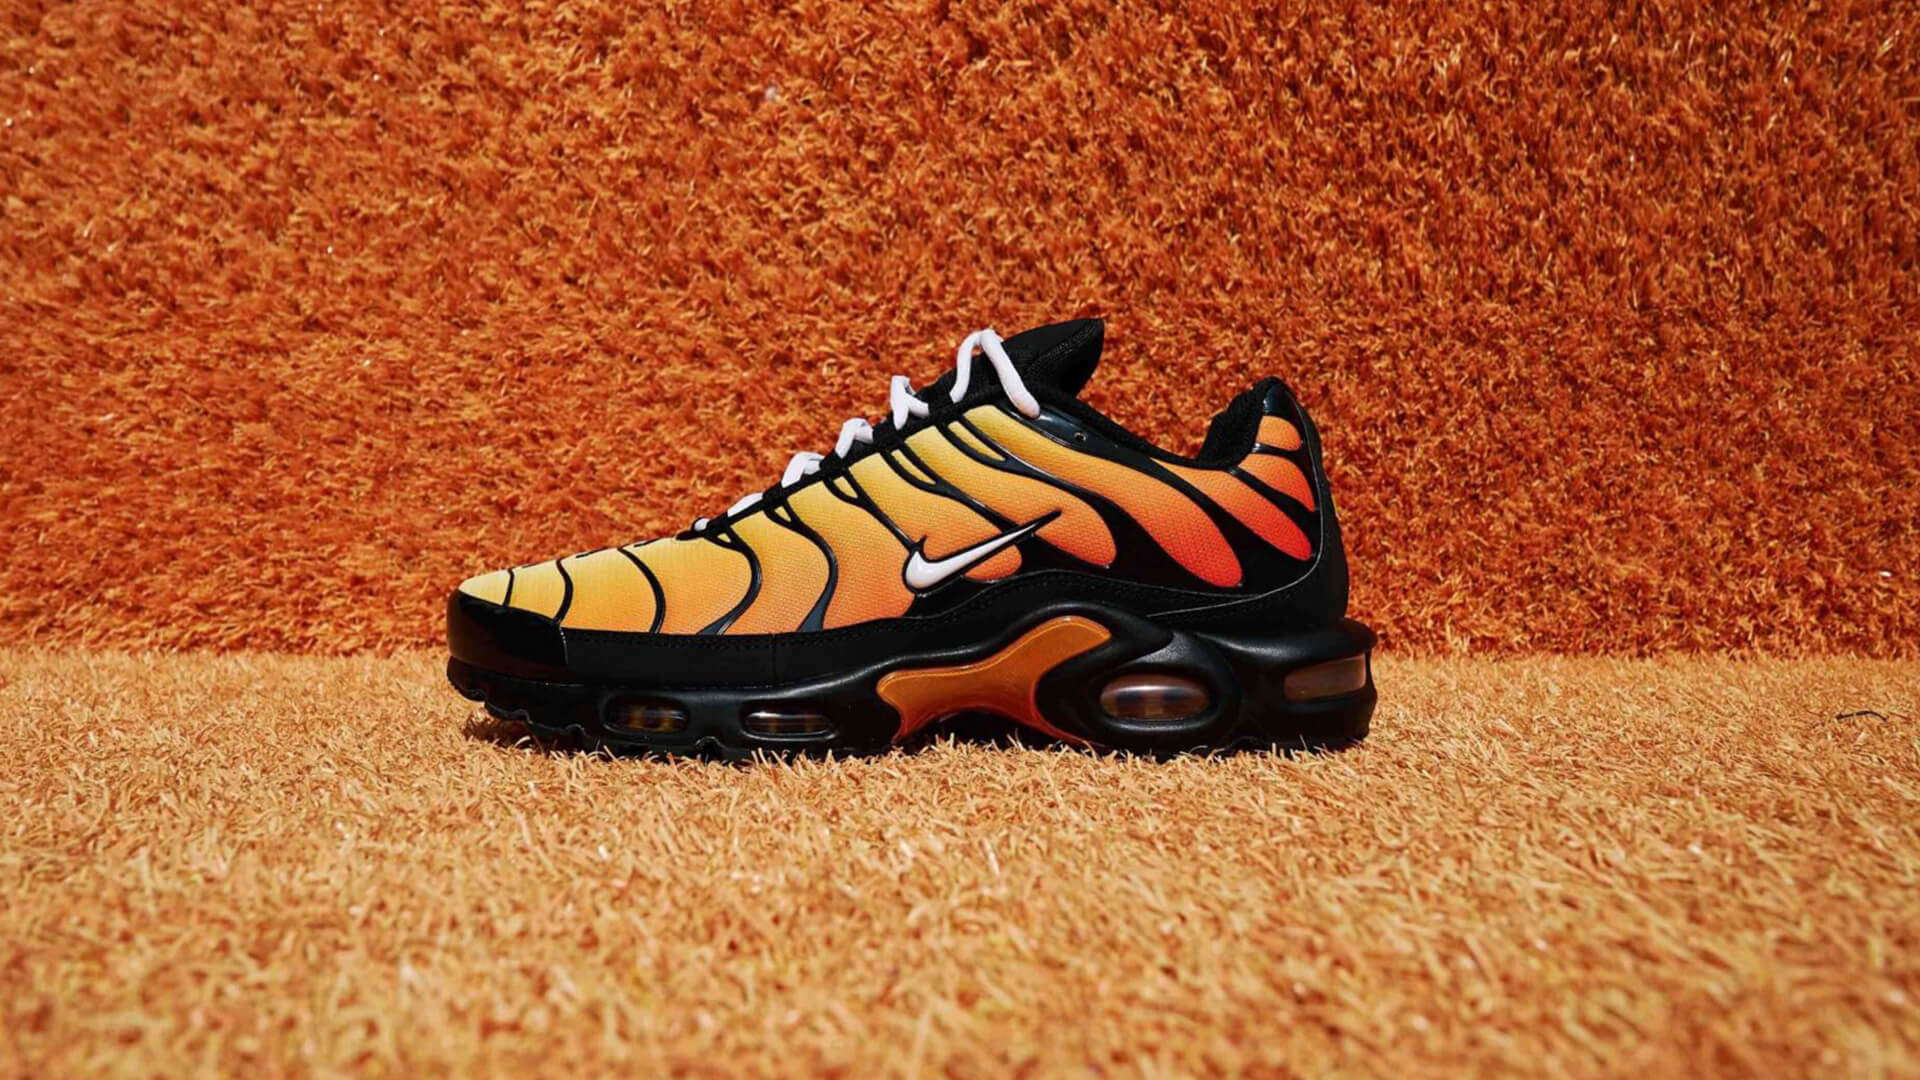 Latest Nike TN Air Max Plus Trainer Releases & Next Drops